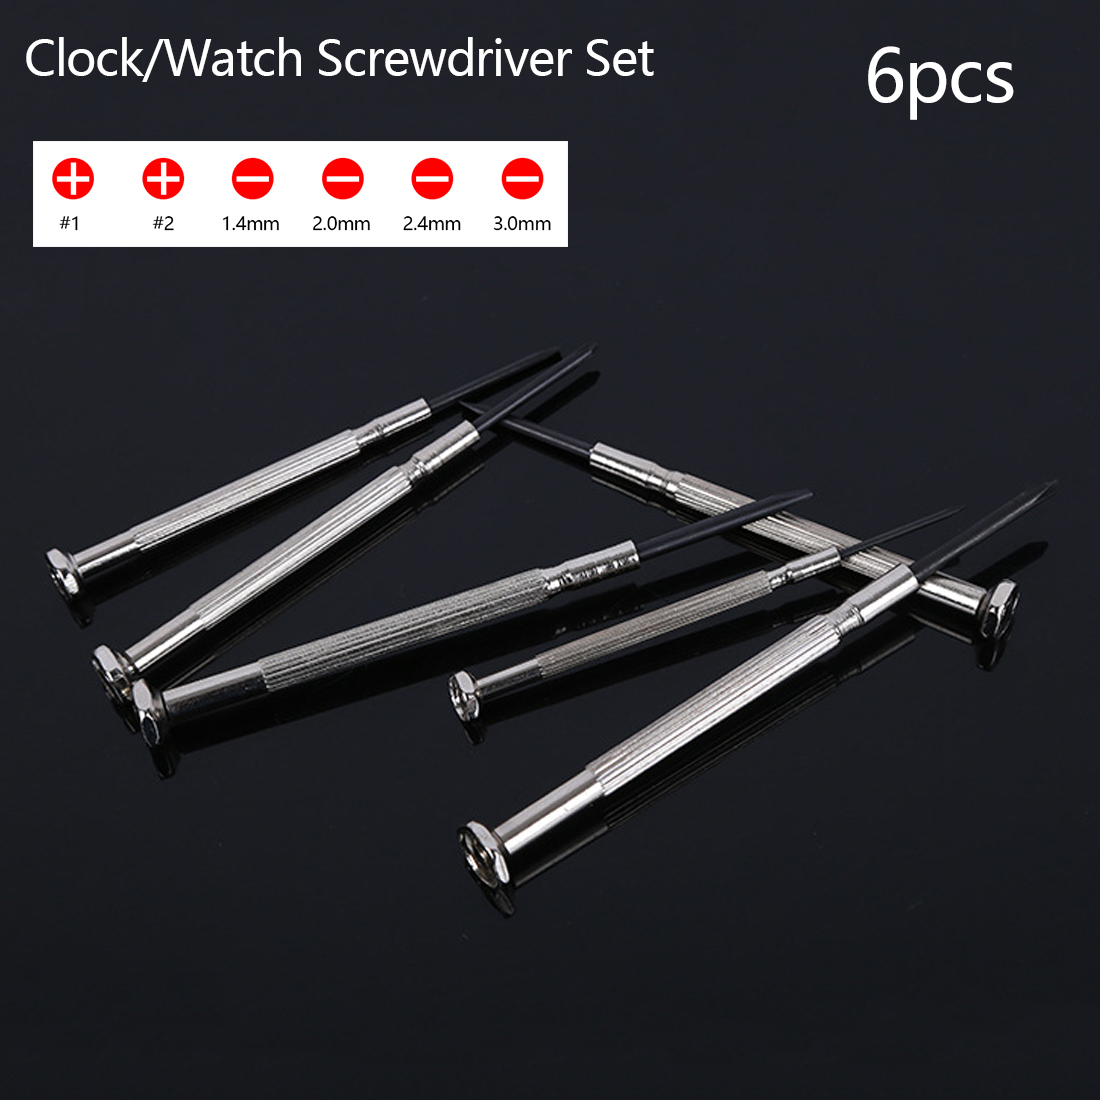 Repair Tools 6pcs Precision Multifunction Mini Small Screwdriver Set With Slotted Phillips Bits For Watch Glasses Screw Driver